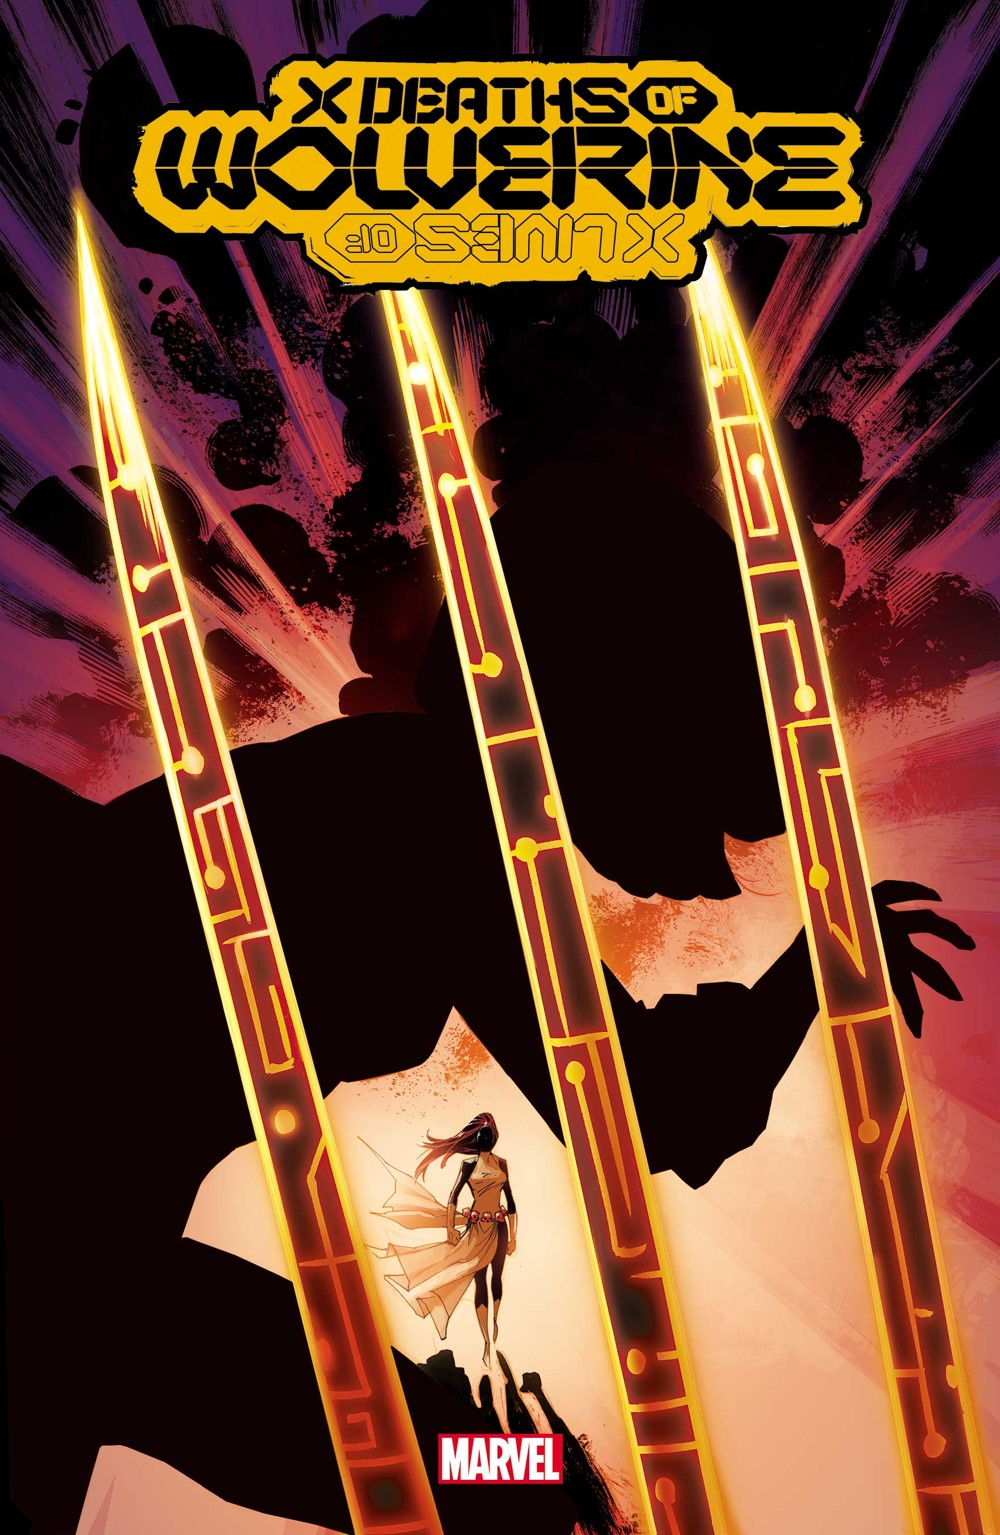 XDEATHSWOLV2021002 Explore the X LIVES and X DEATHS of Wolverine this January